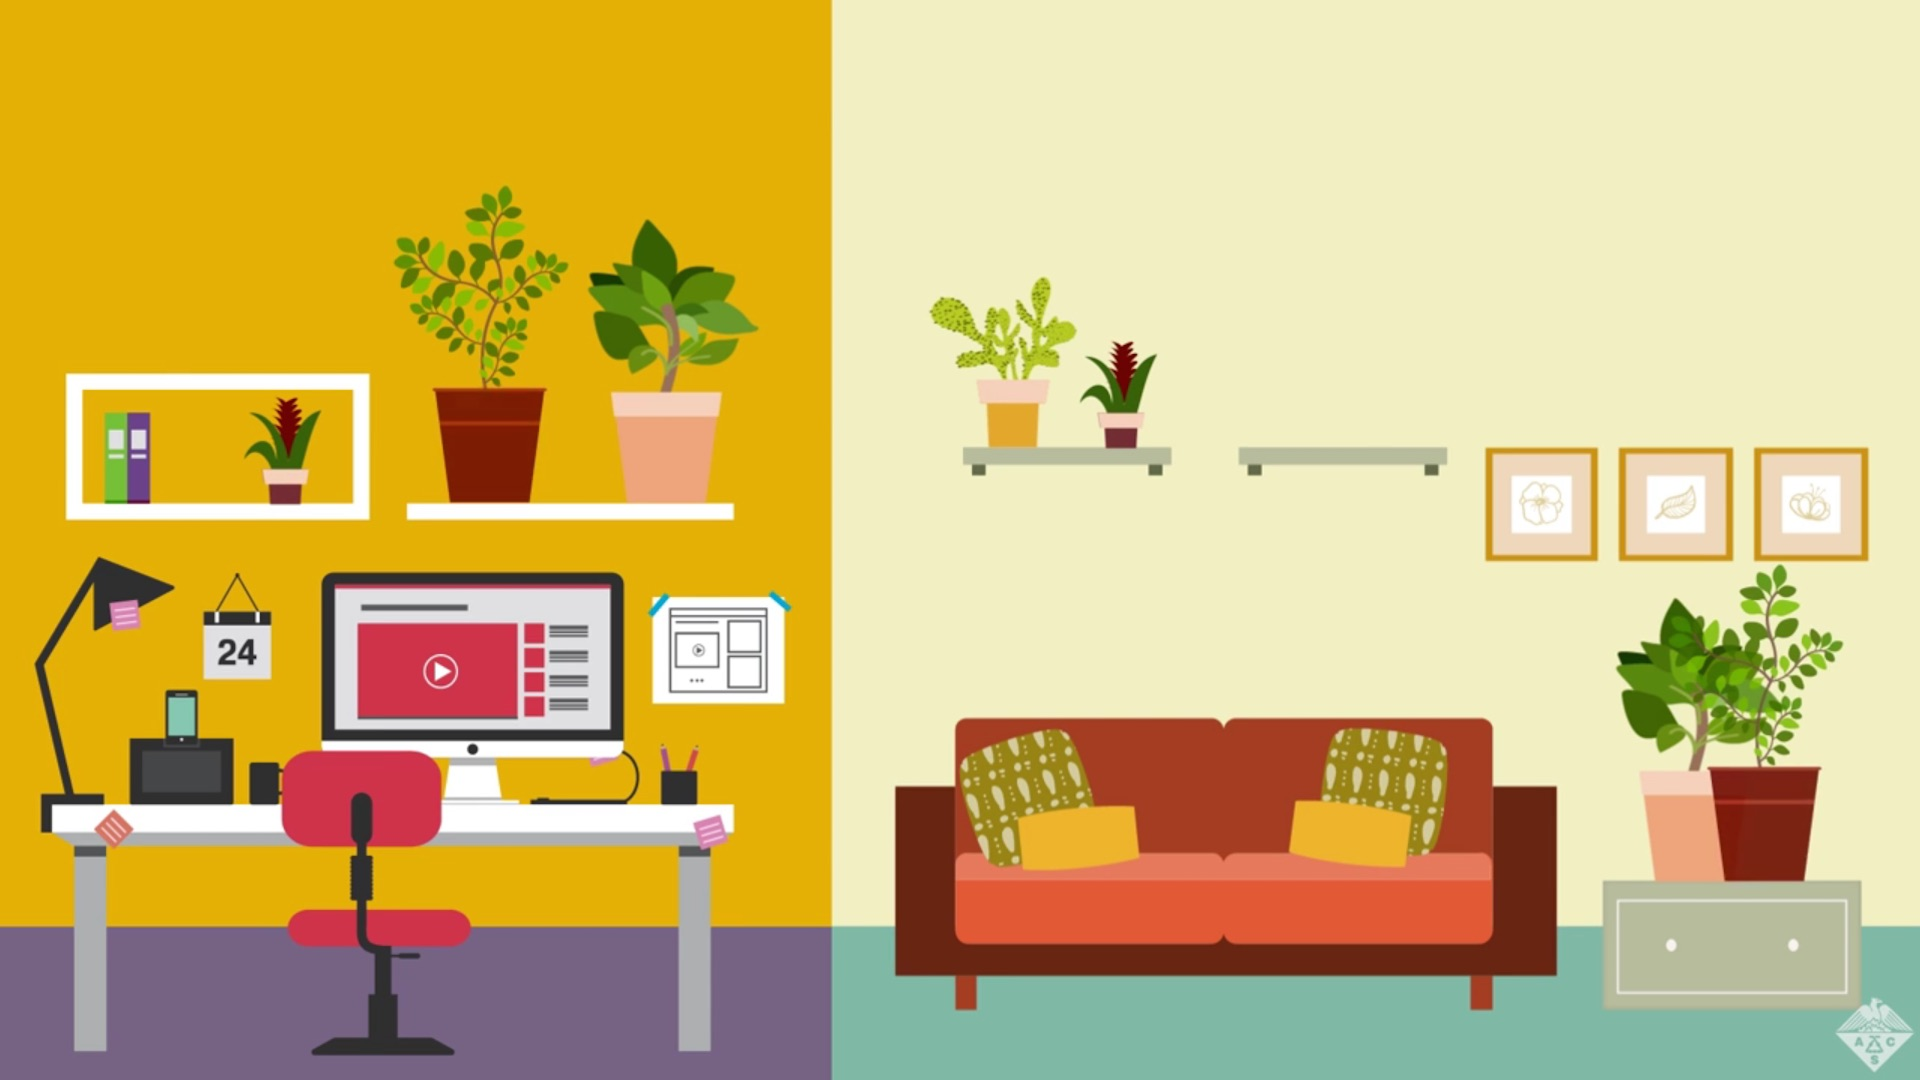 A surprising simple solution to bad indoor air quality: potted plants